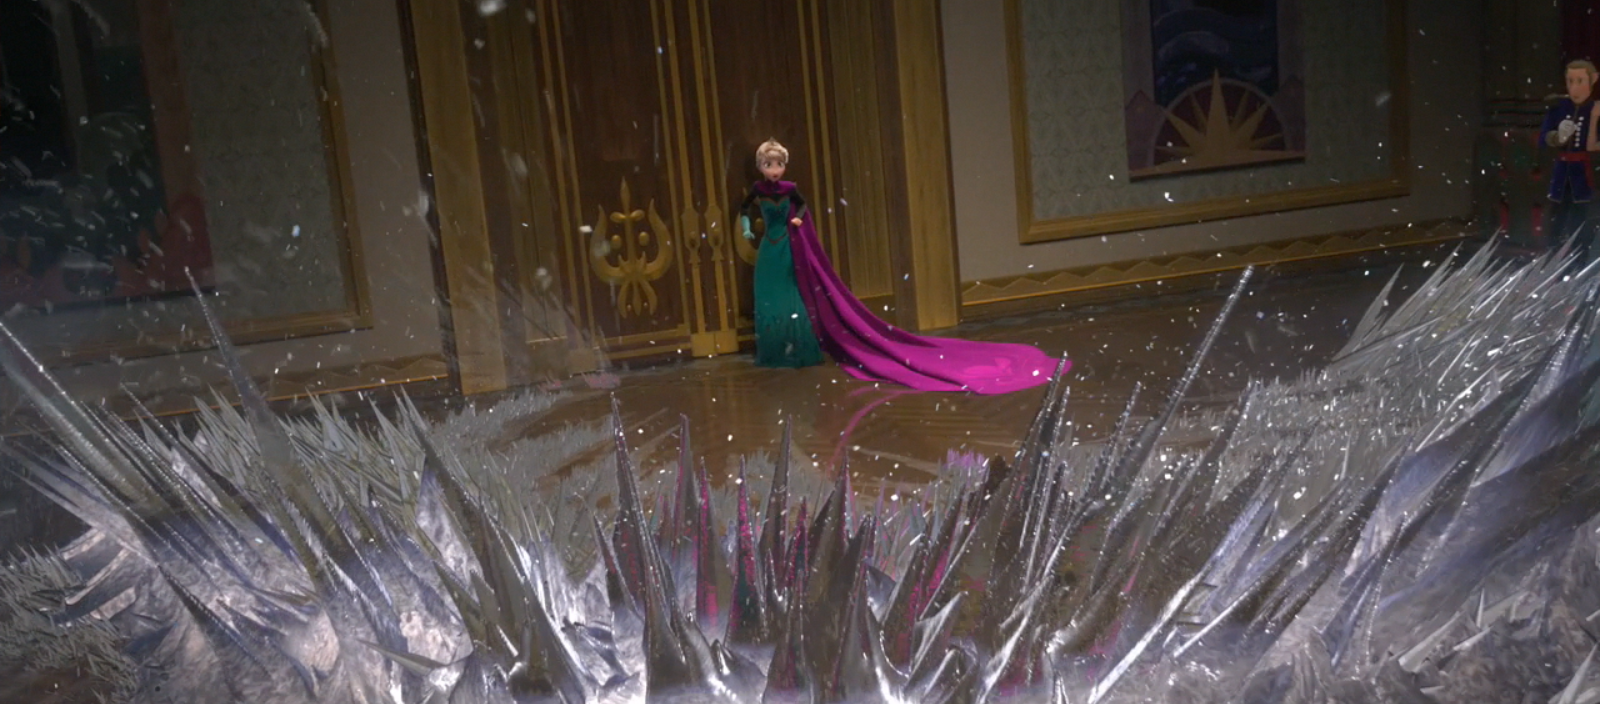 What If Frozen Was A Horror Movie?